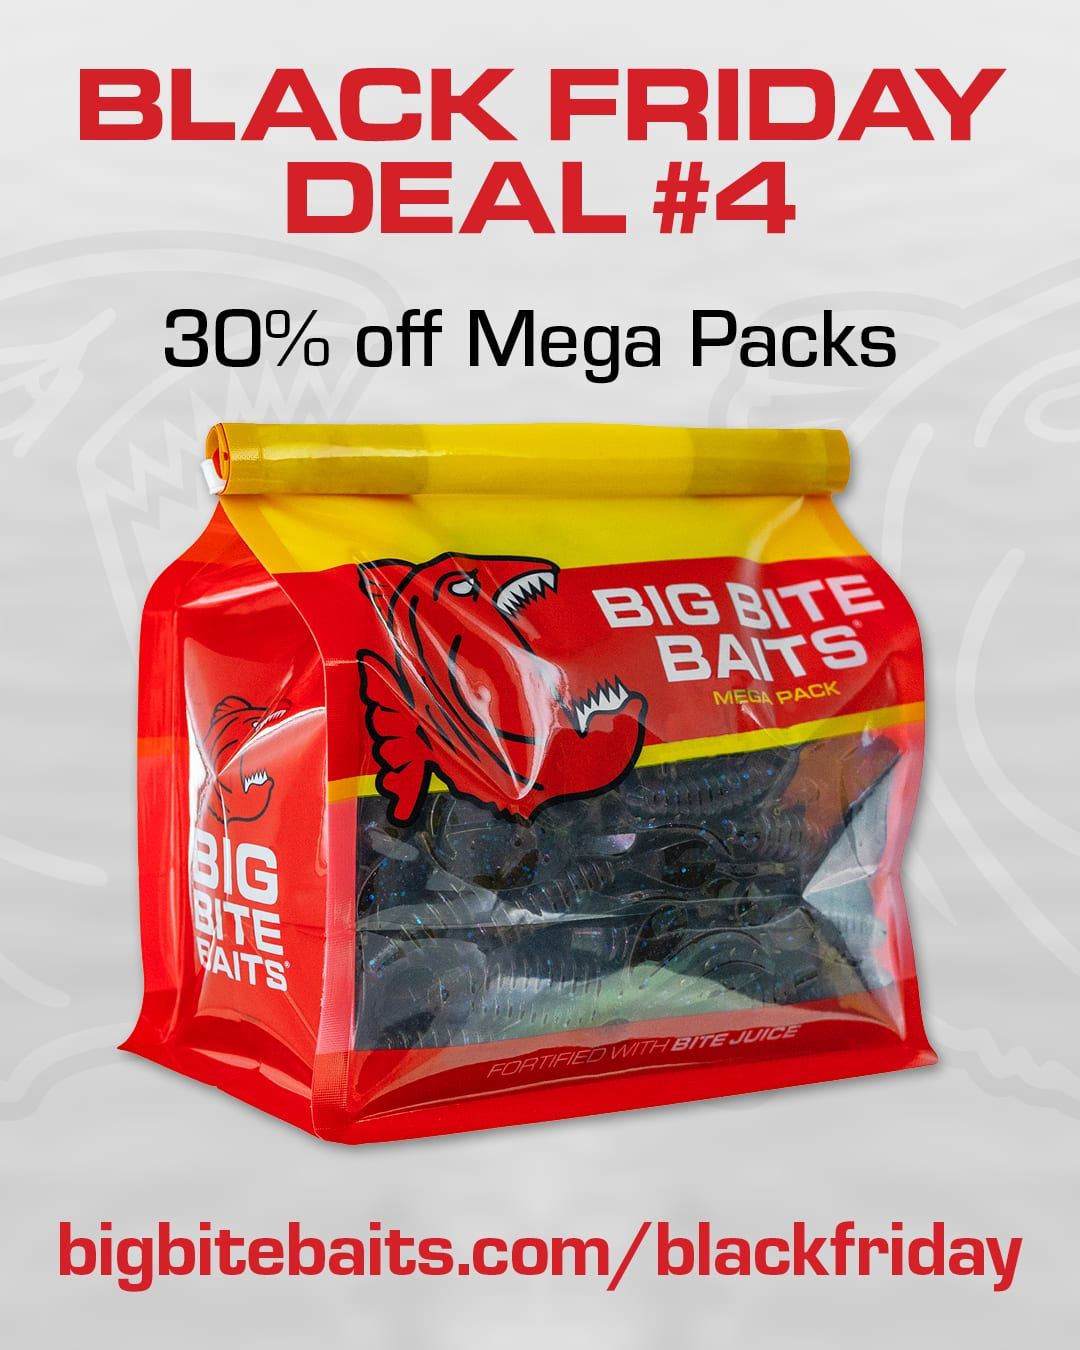 bf 4 mega packs